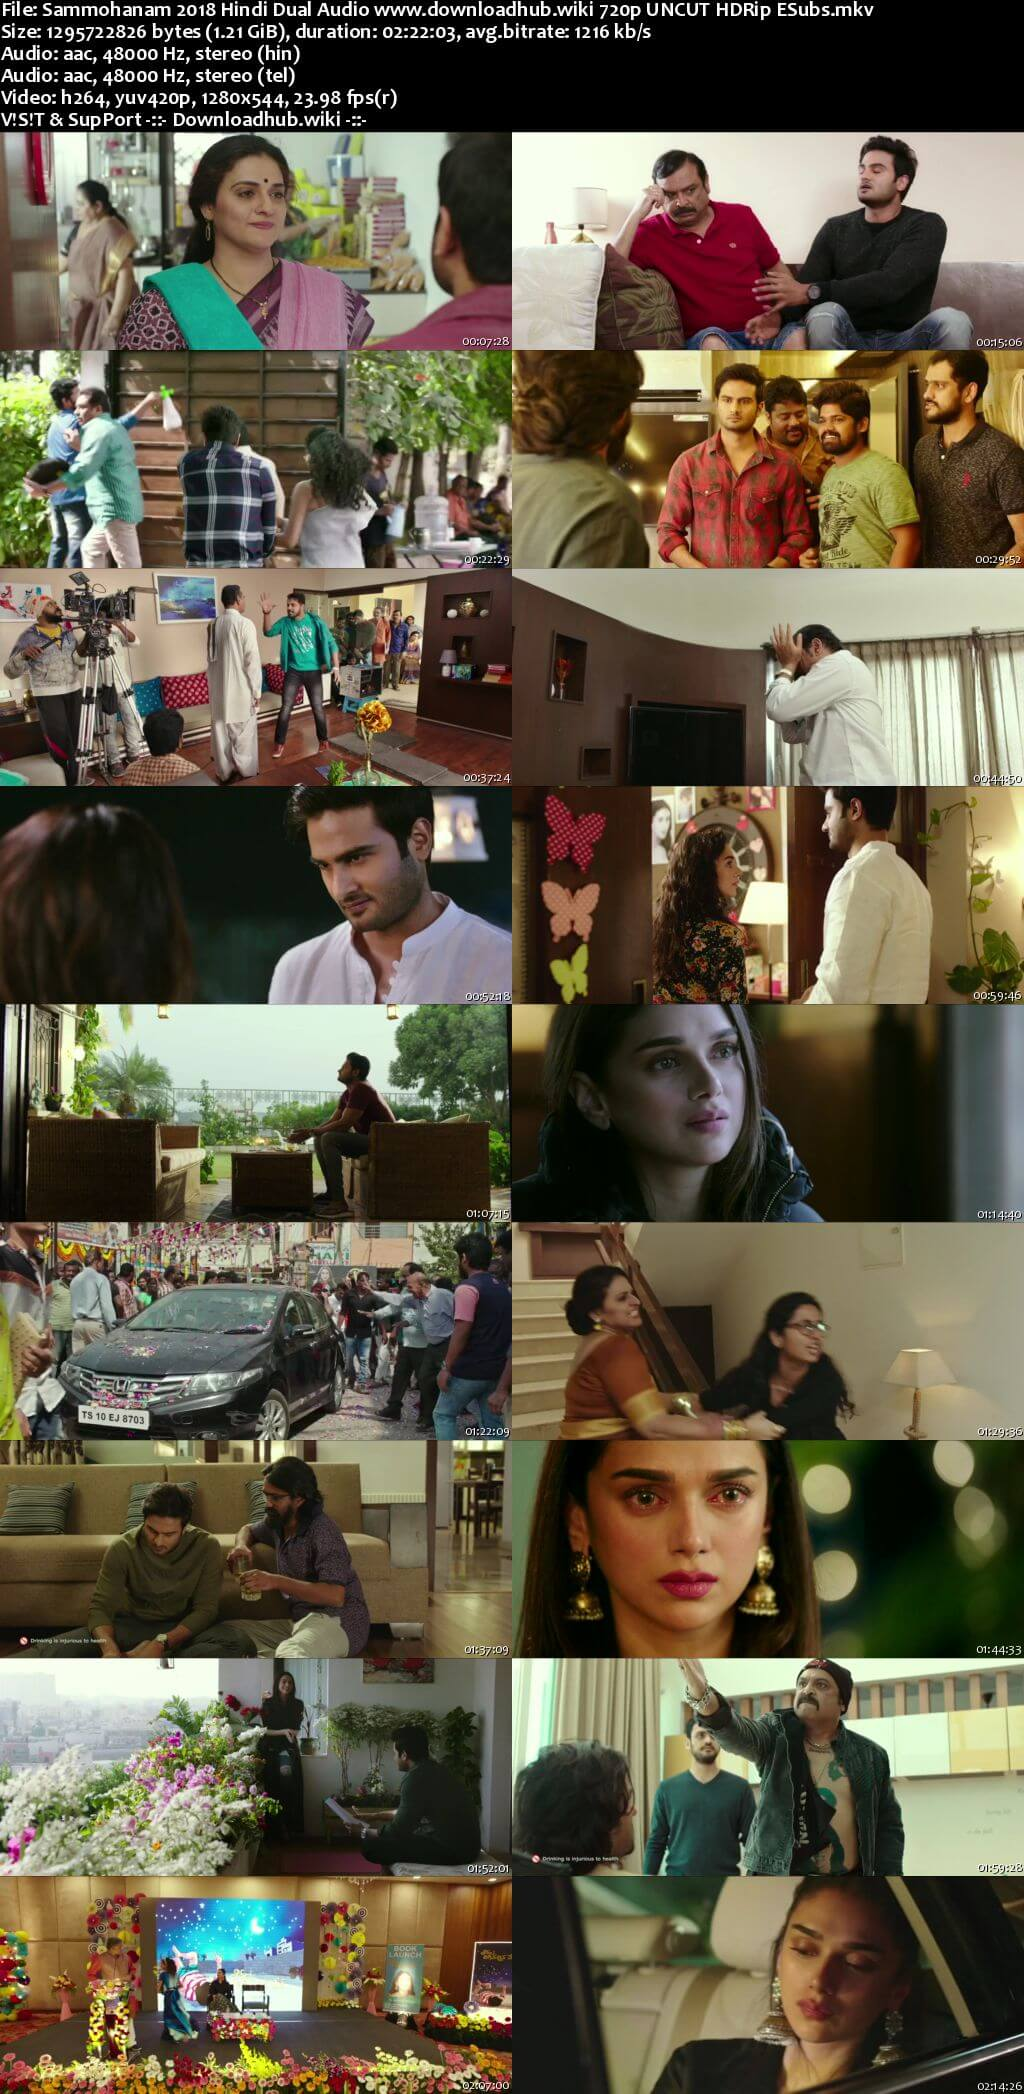 Sammohanam 2018 Hindi Dual Audio 720p UNCUT HDRip ESubs